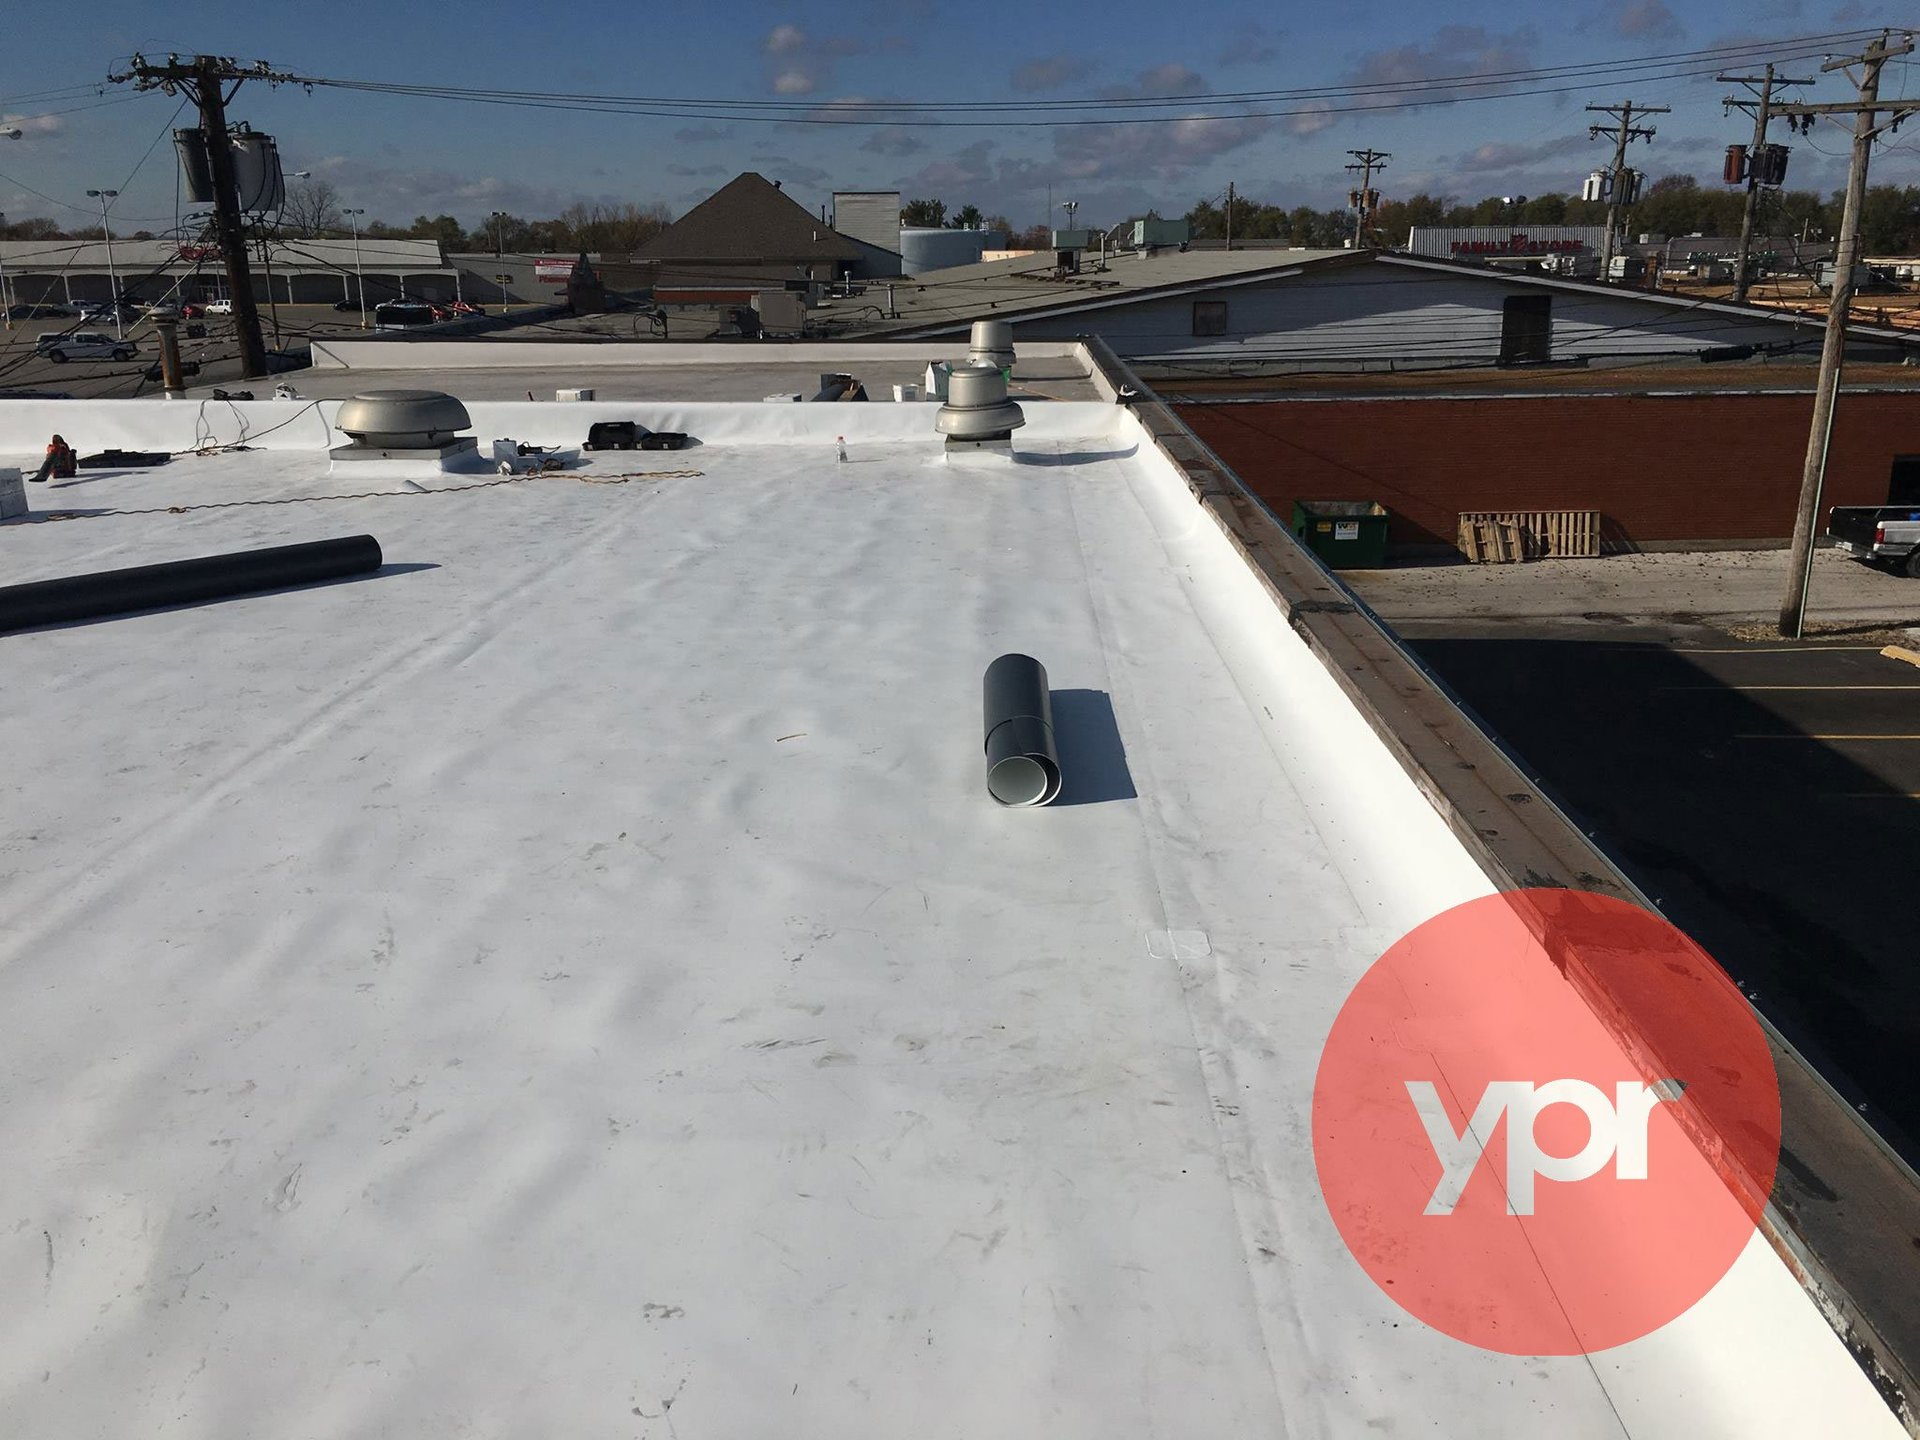 Ongoing roofing service/project